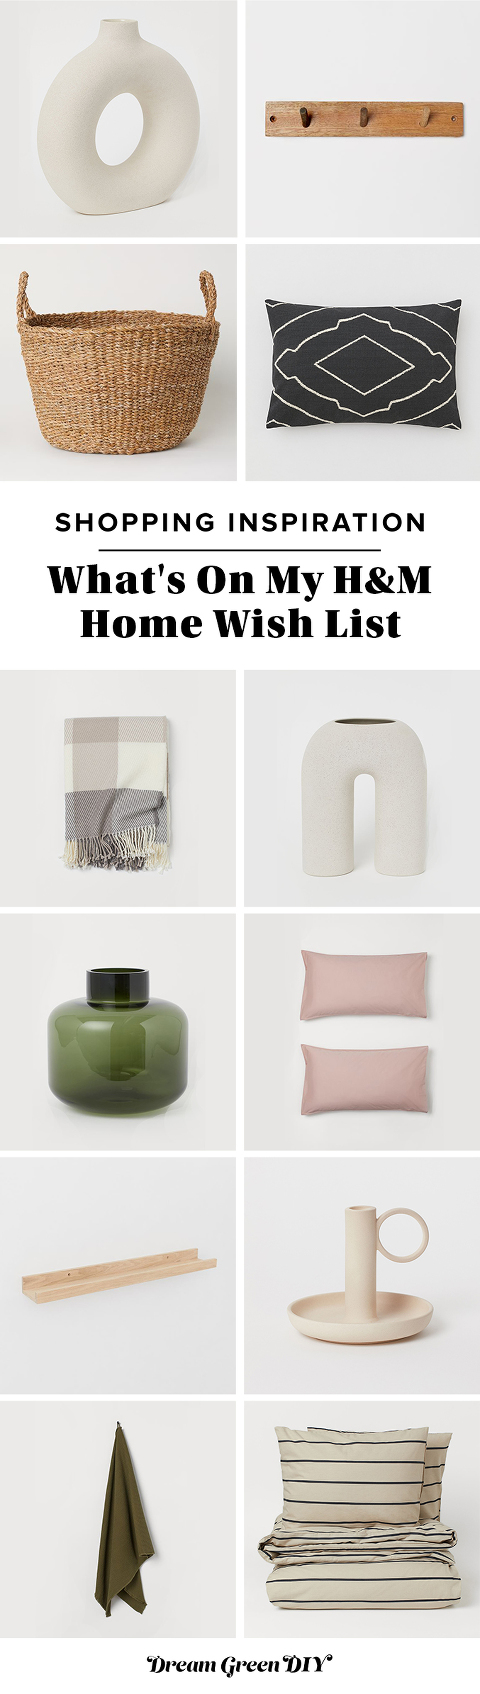 What's On My H&M Home Wish List